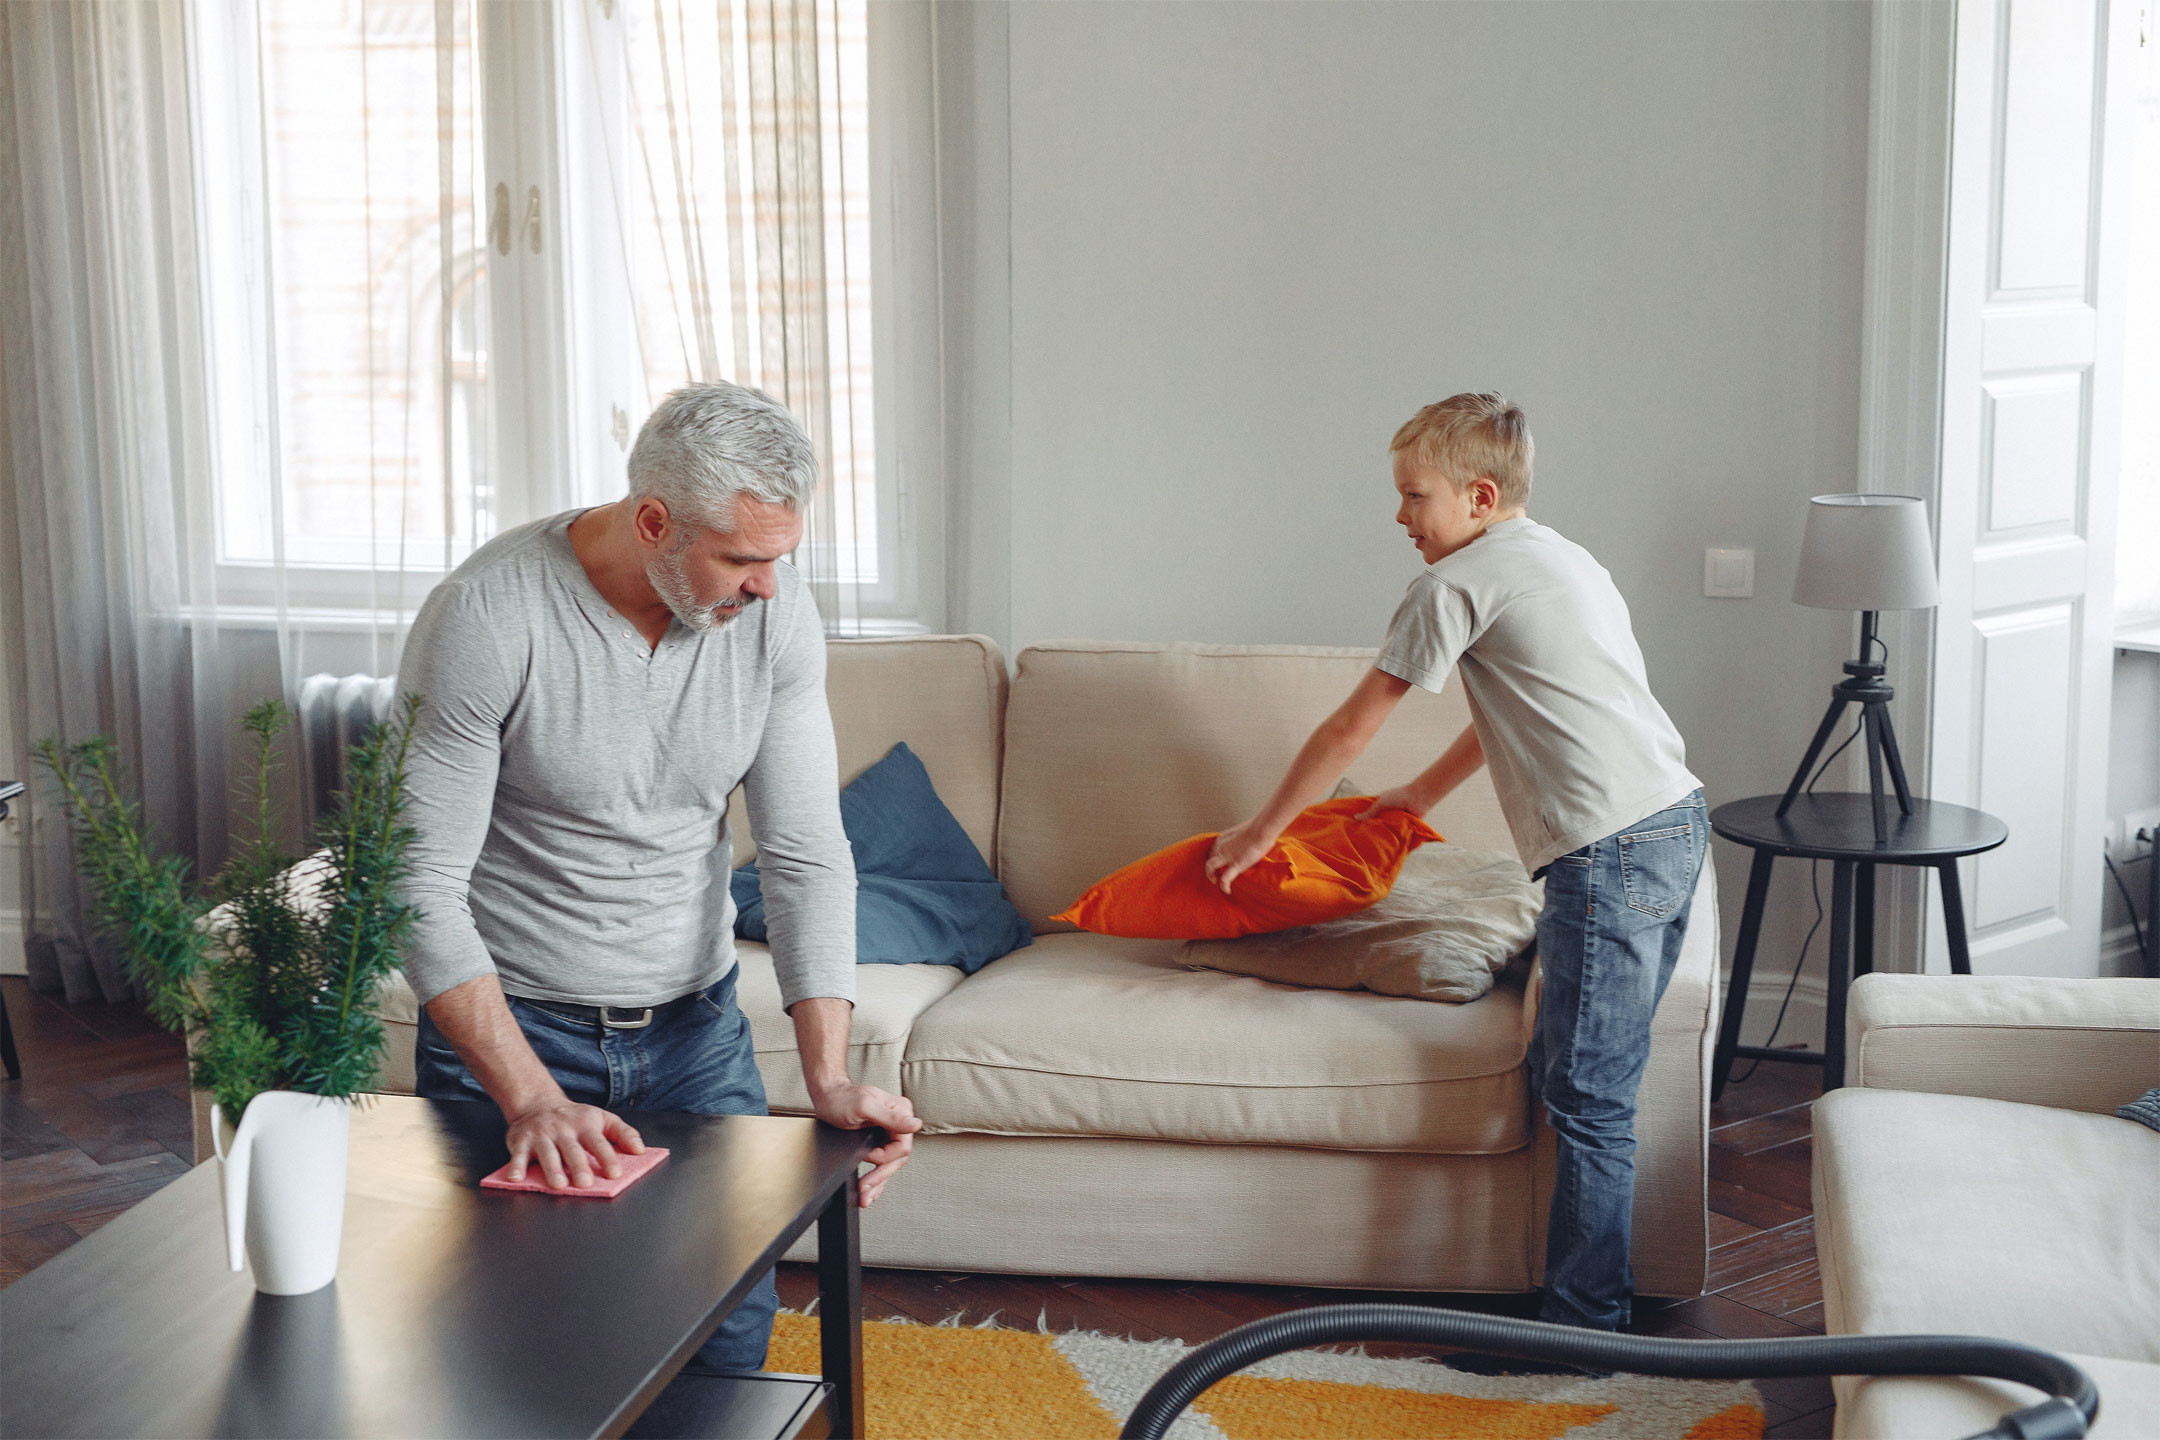 father-son-cleaning2160